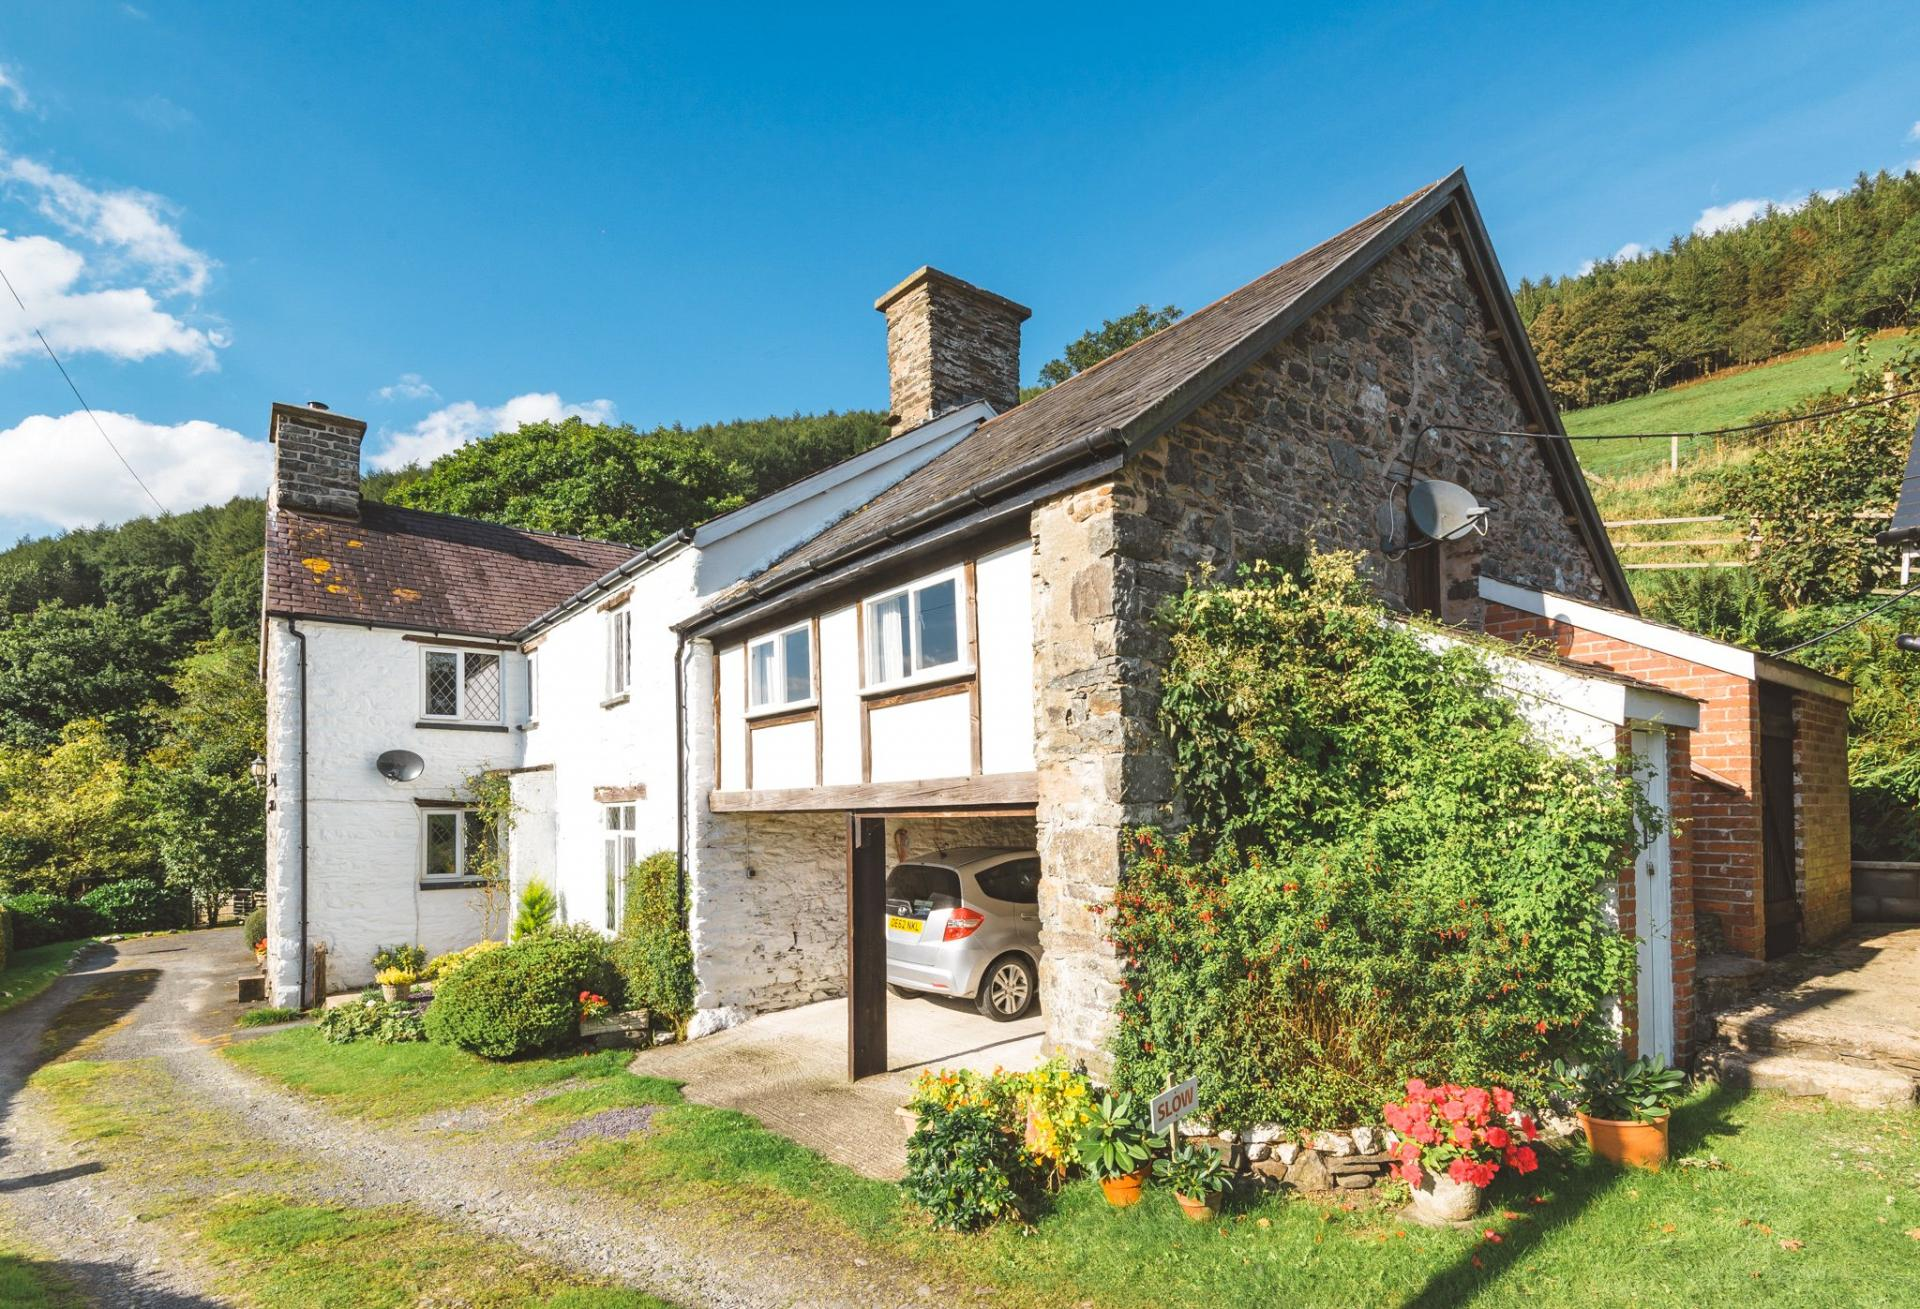 4 Bedroom Detached House For Sale In Powys